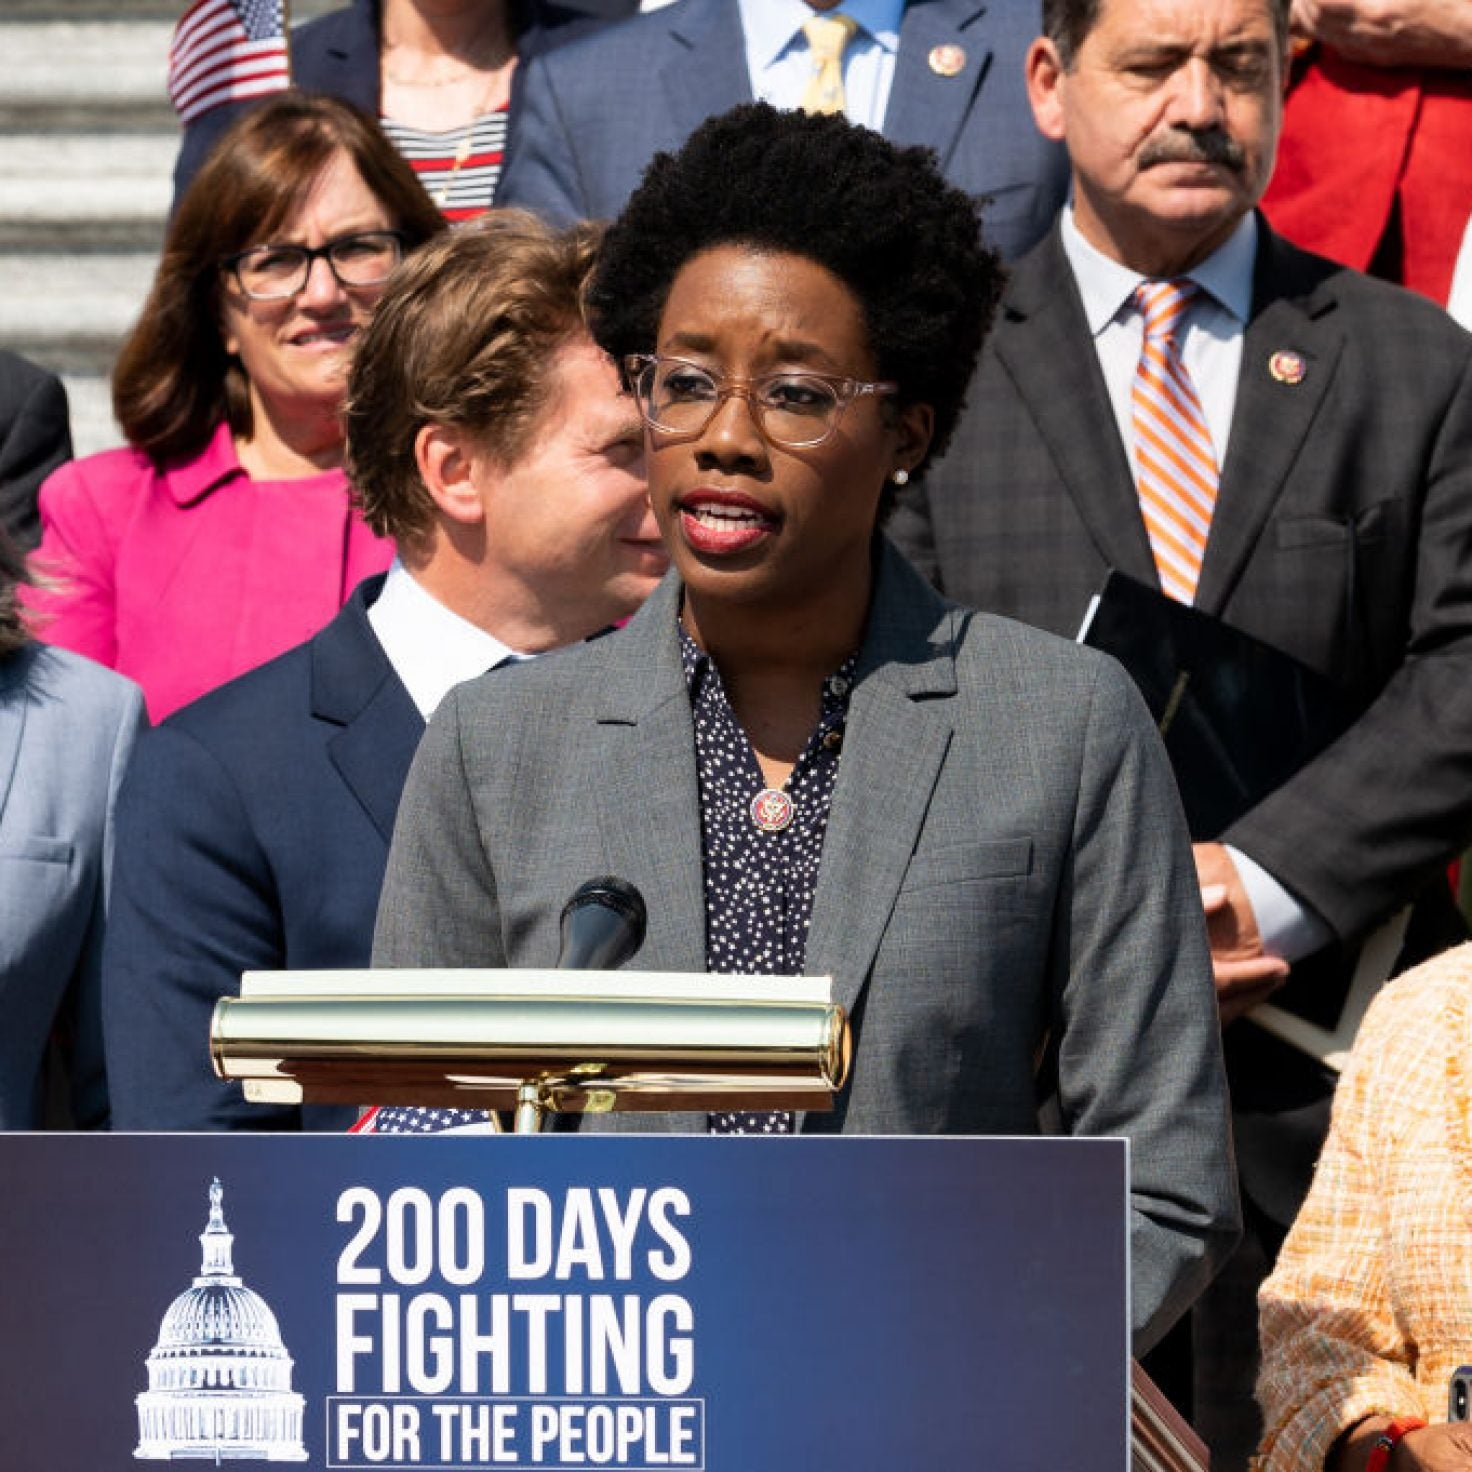 Lauren Underwood Wins Reelection To U.S. House In Illinois' 14th Congressional District